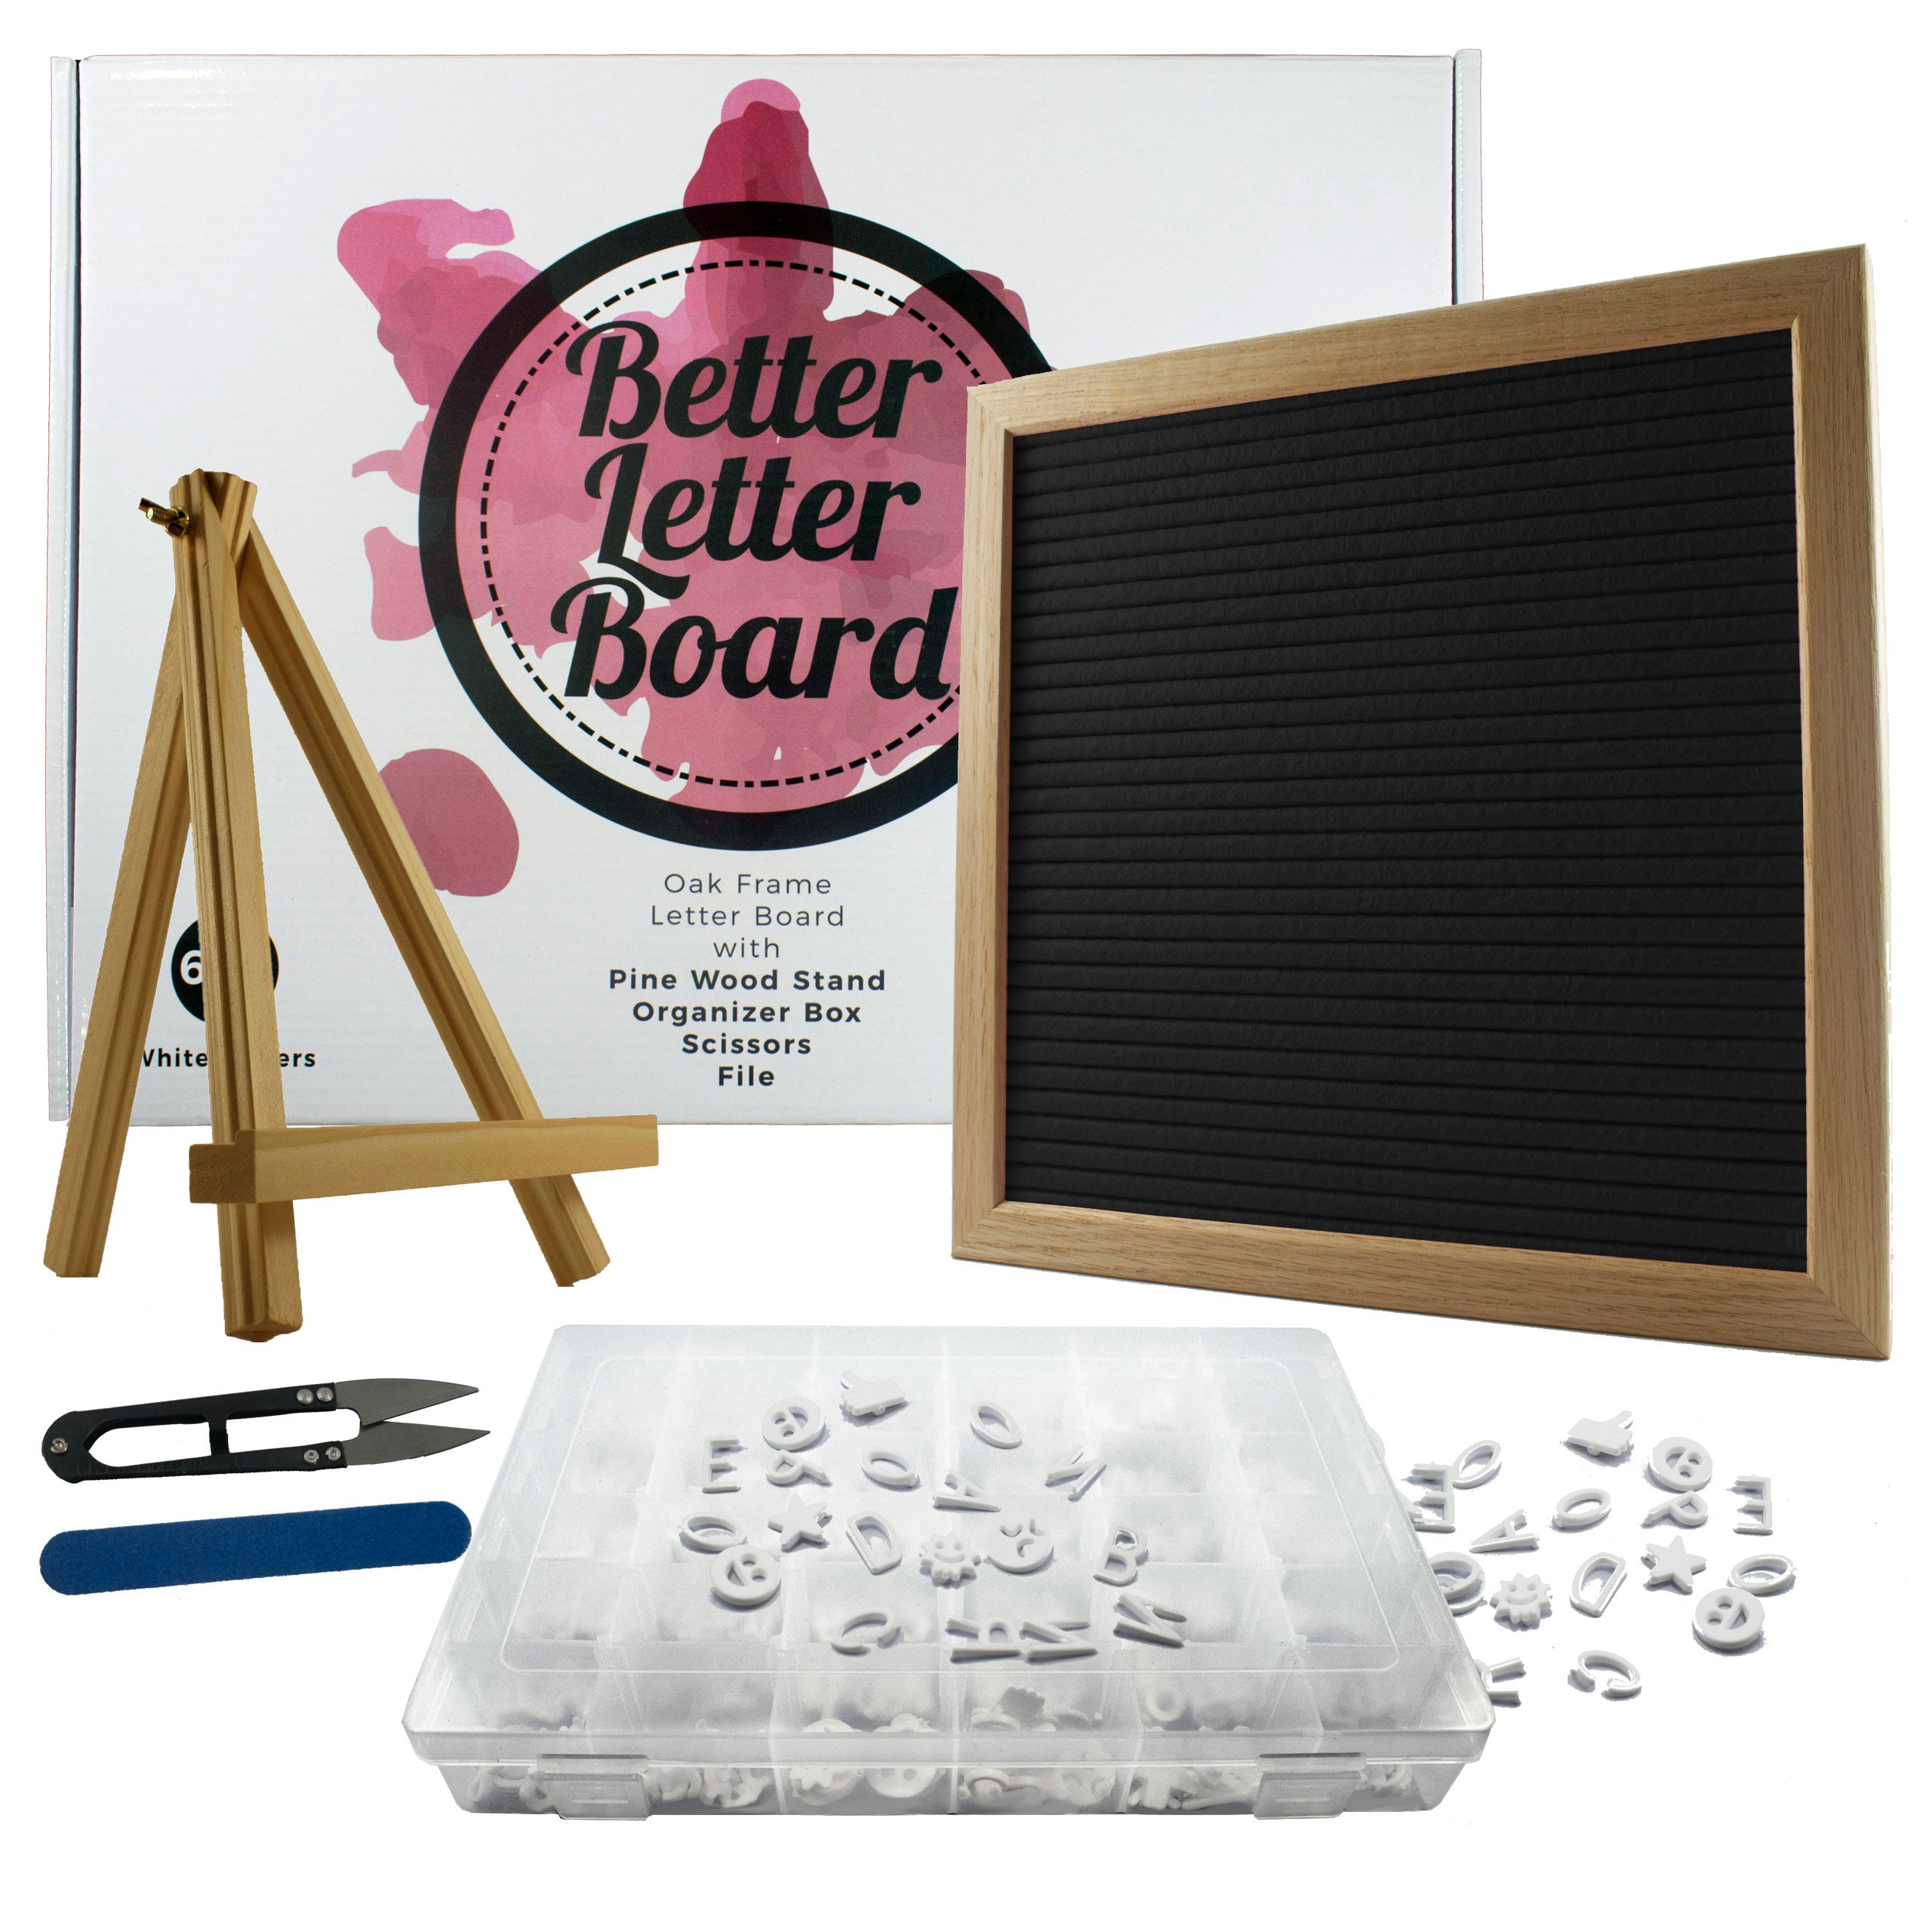 Black Felt Letter Board Bundle | 10 x 10 Inch Changeable Letter Board Set with 640 Letter Board Letters, Accessories, Wood Stand, Letter Box, Scissors & File | Perfect Bridal Shower Gift, Wedding Gift